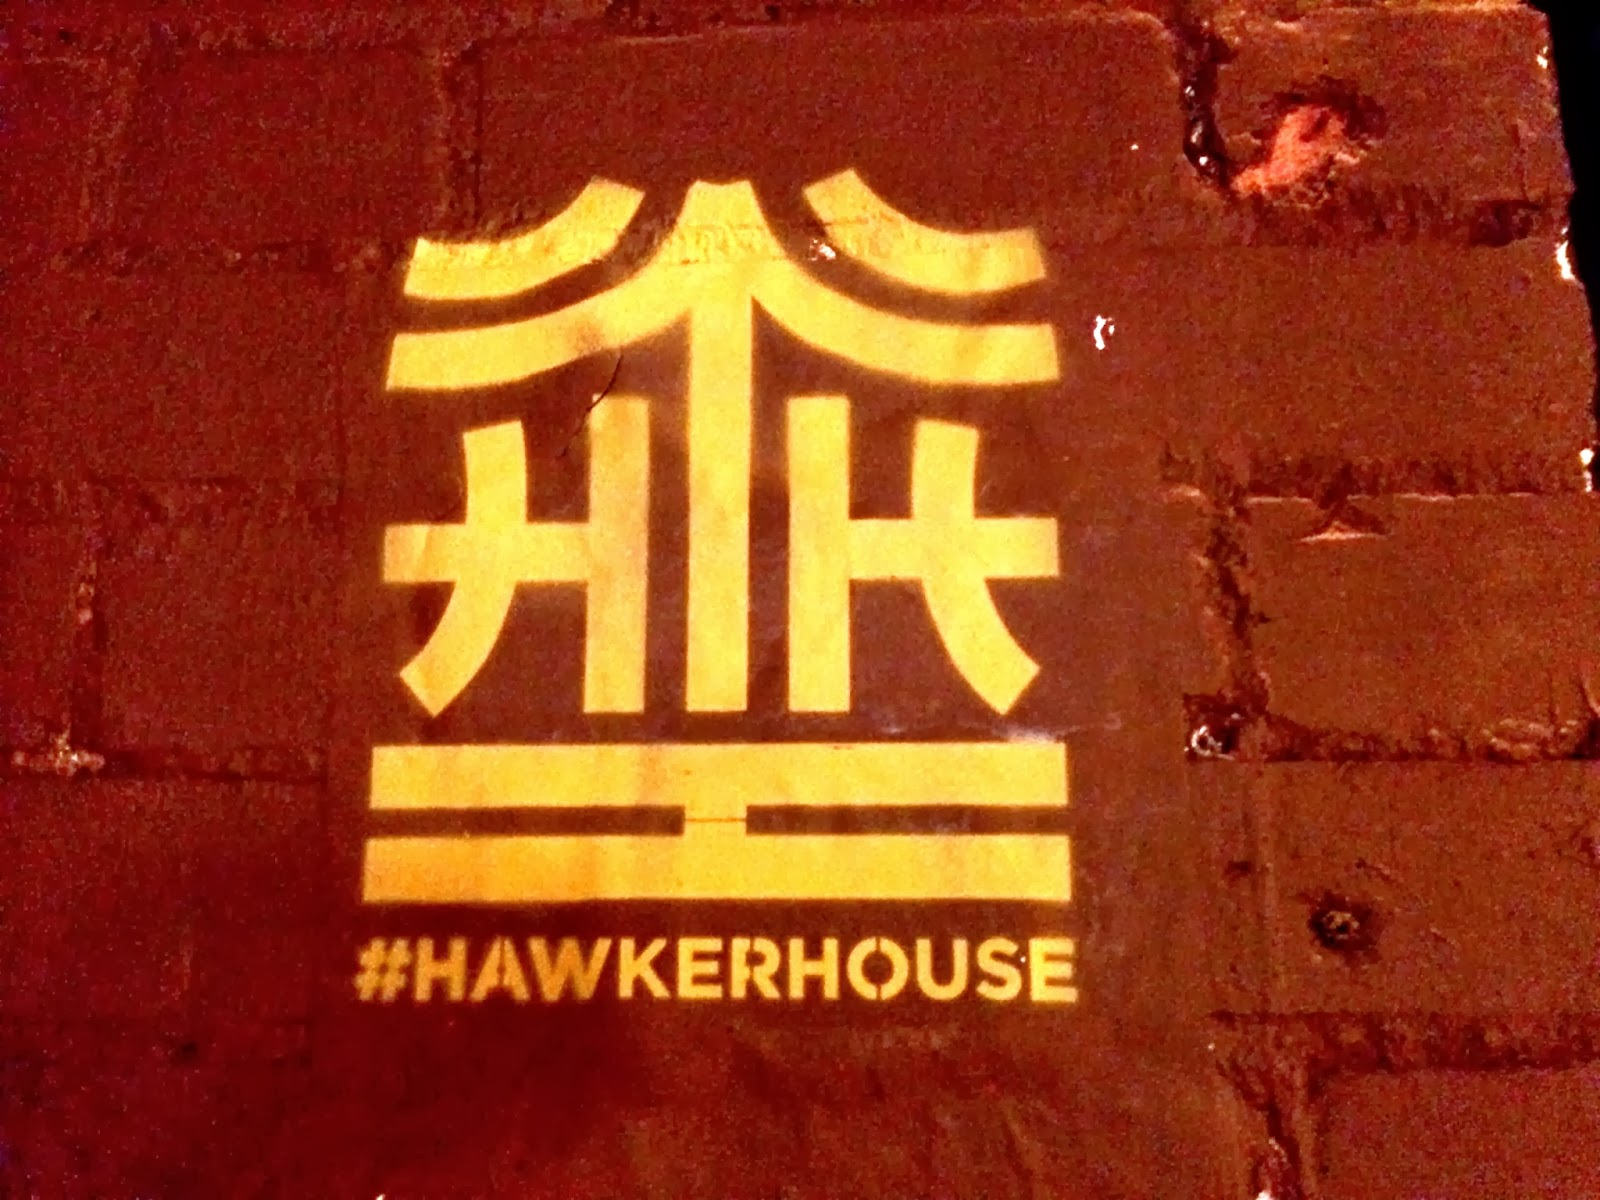 Hawker House hashtag